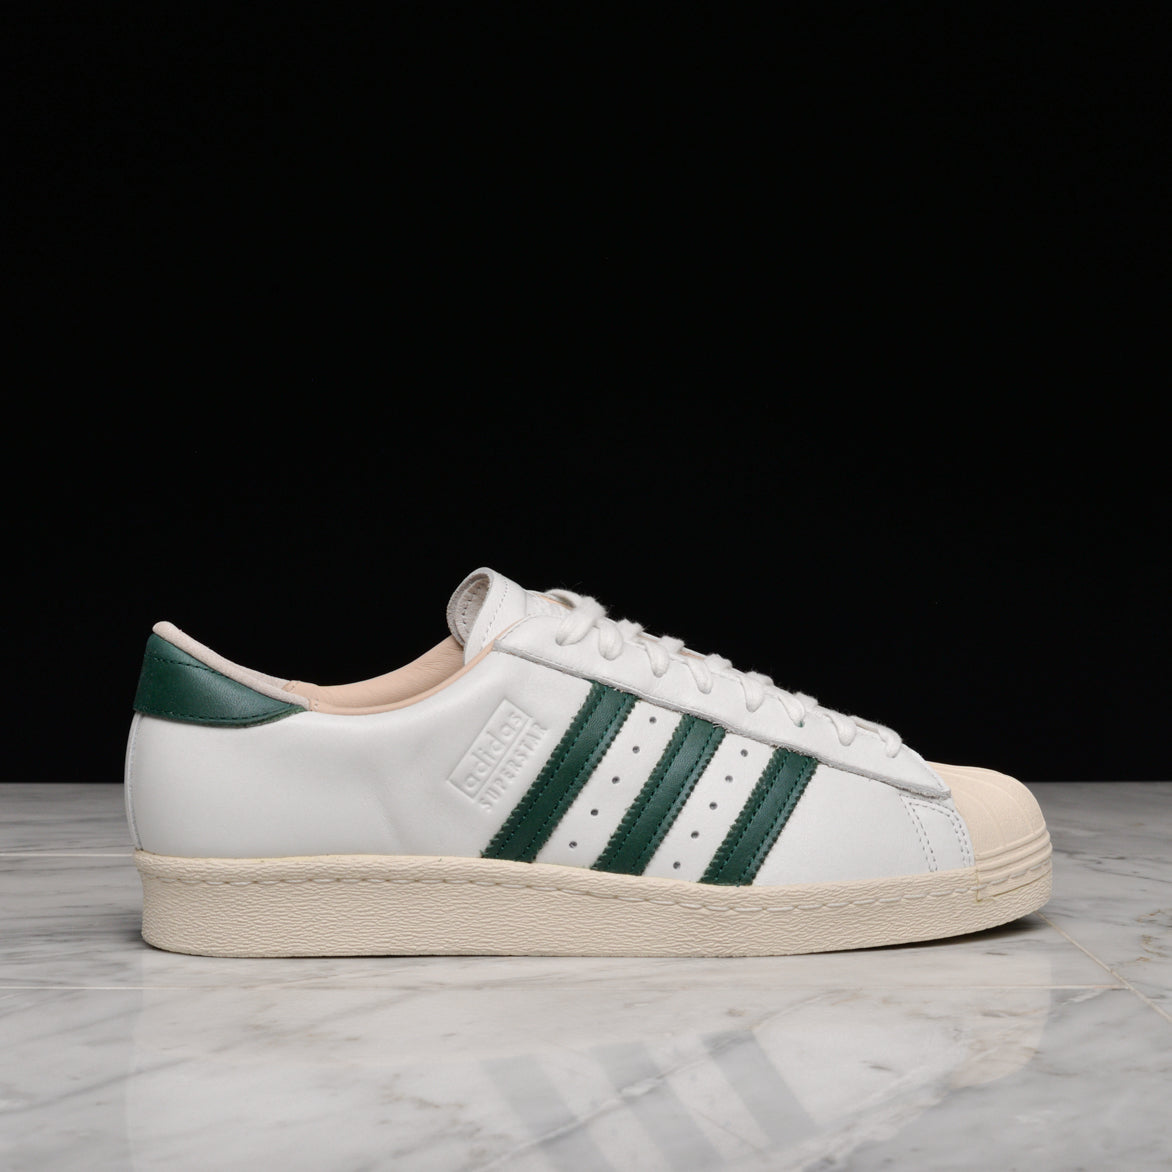 Adidas Superstar 80s Trainers WhiteGreen